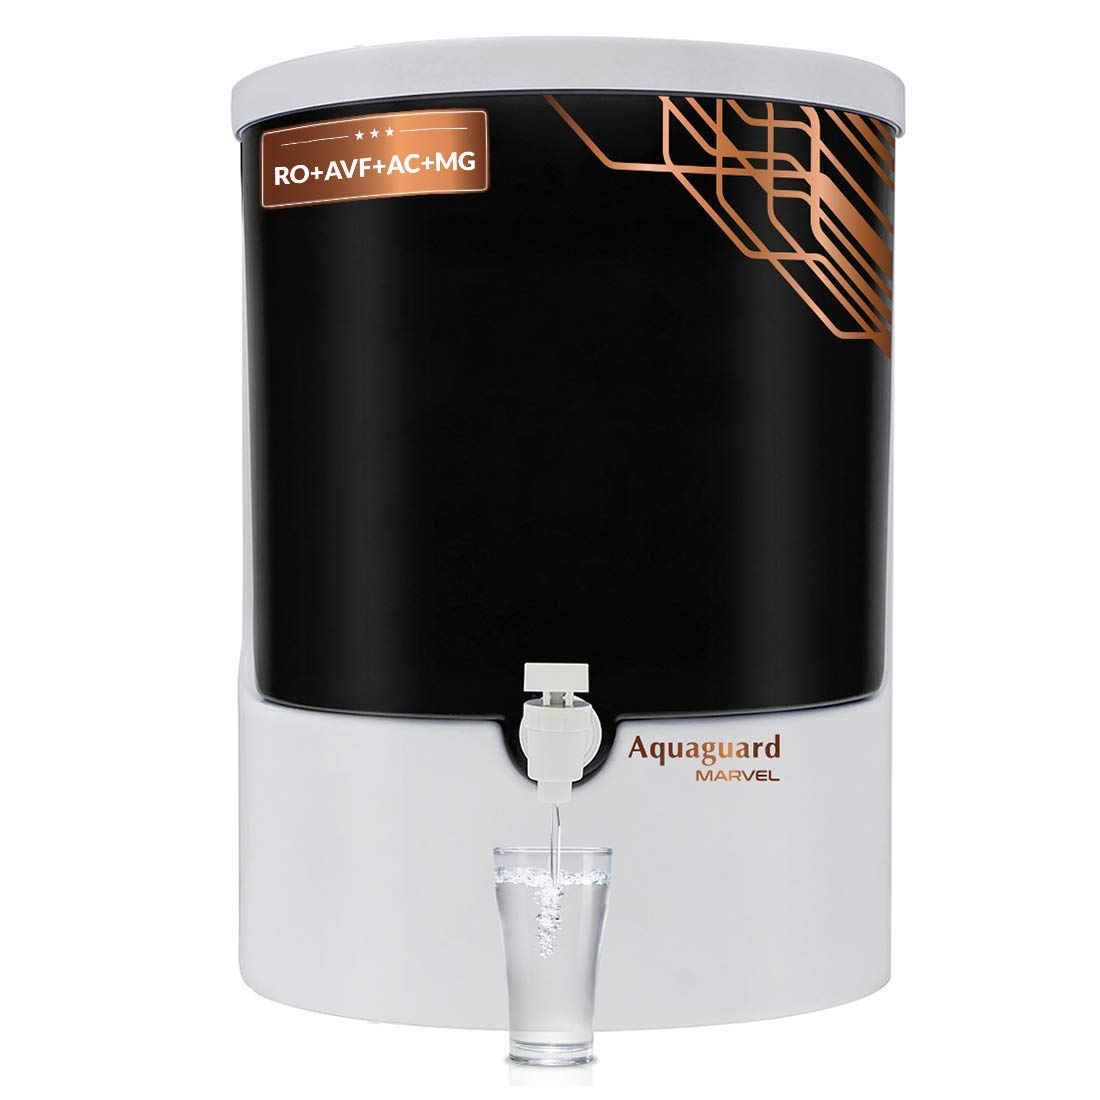 [Apply Coupon] Aquaguard Marvel RO+Advanced Virus Filter+Active Copper+Mineral Guard Technology (8L) water purifier from Eureka Forbes (White & Black)